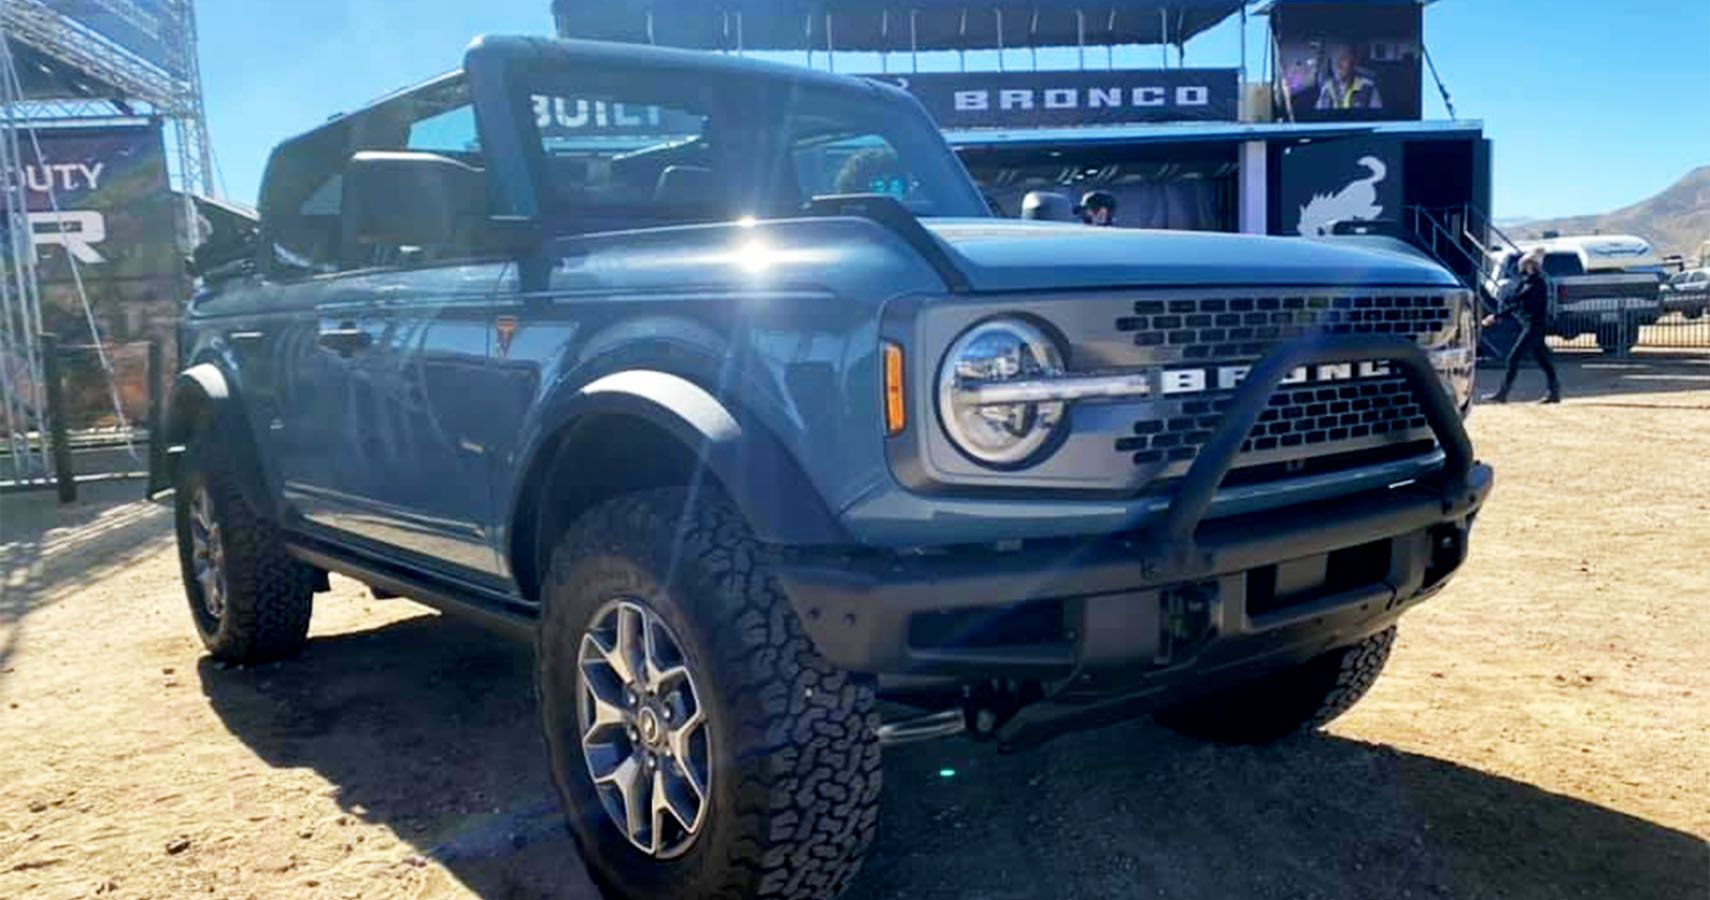 2021 bronco four-door badlands with soft top spotted at